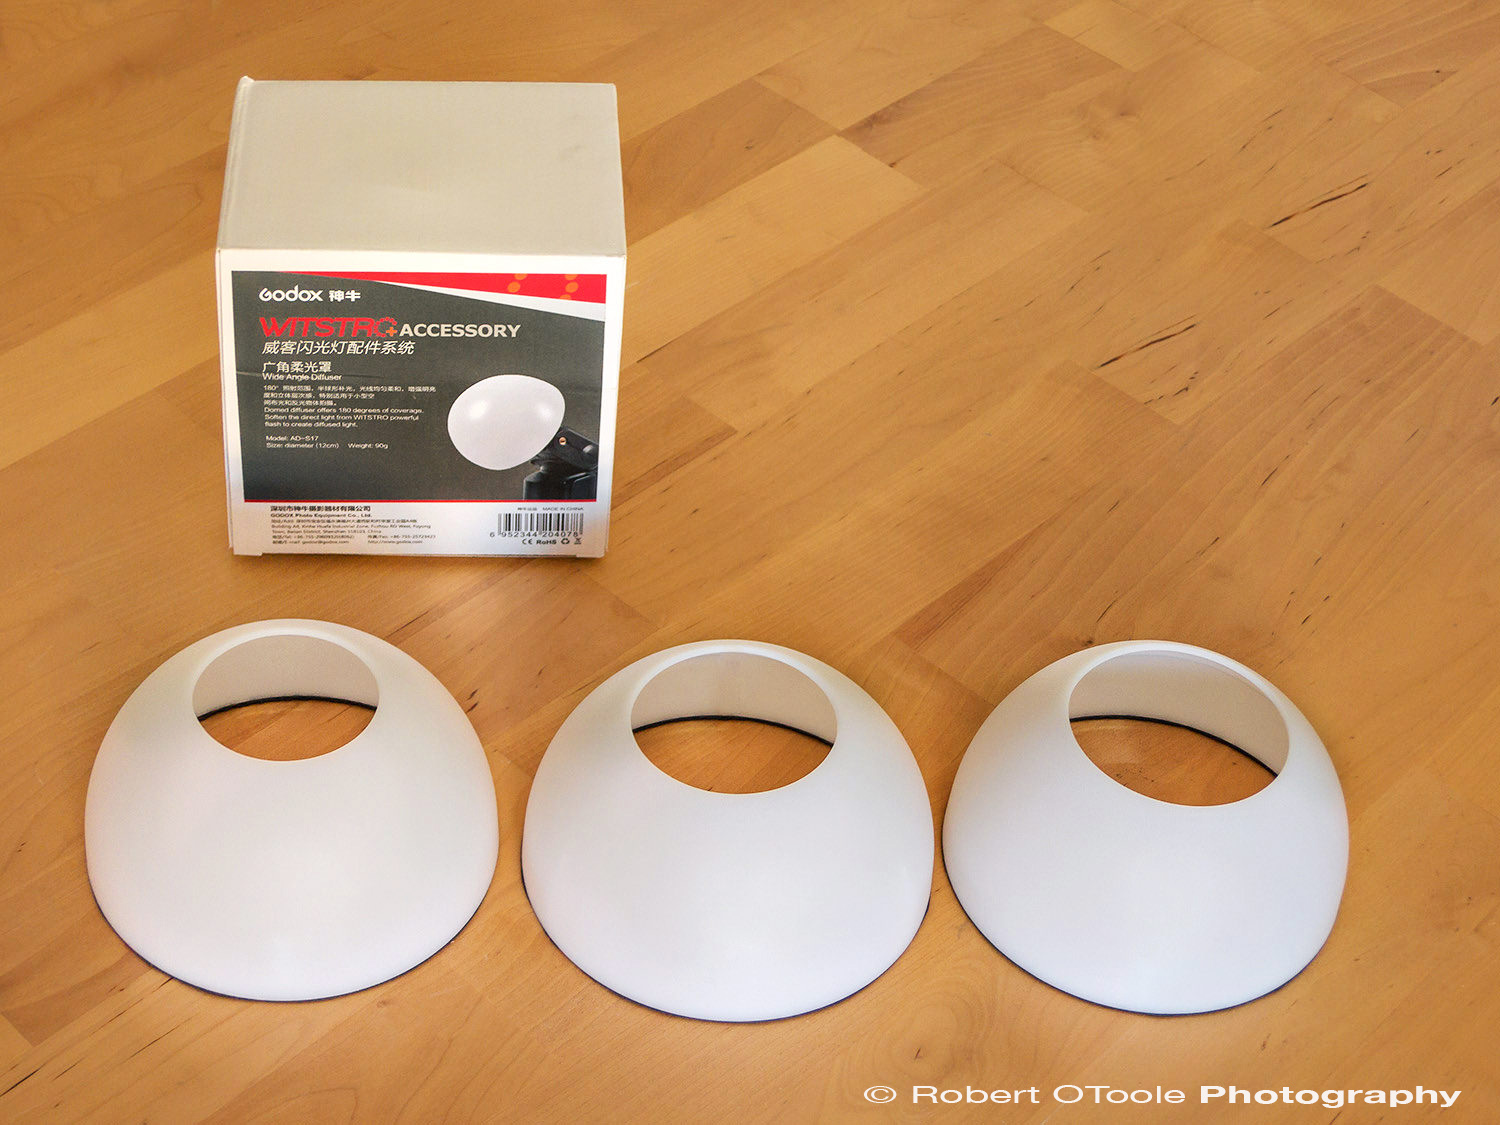 Godox AD S17 Wide Angle Soft Focus Shade Diffuser, with 2.25 inch, 2.5 inch, and 3 inch openings. The bottom edge has a felt-like flocking material added.